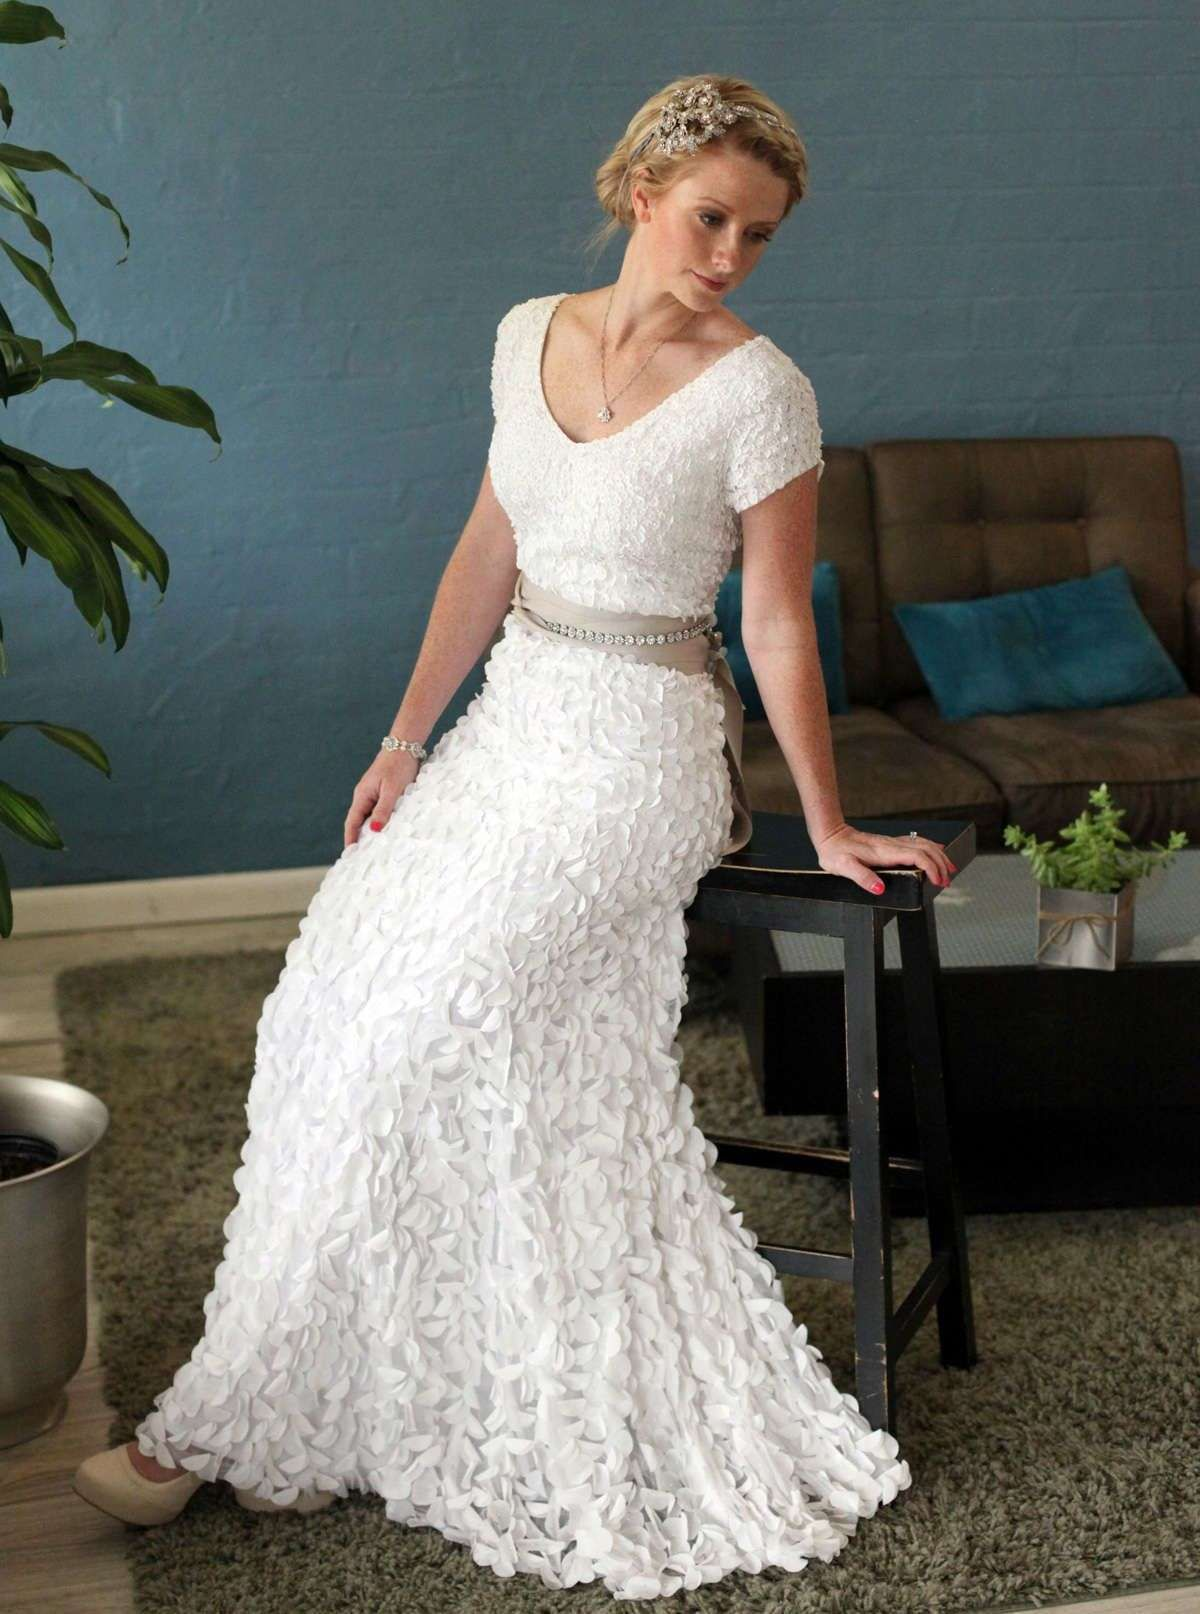 2nd wedding dresses older bride 1080p hd pictures for 3rd time wedding dresses